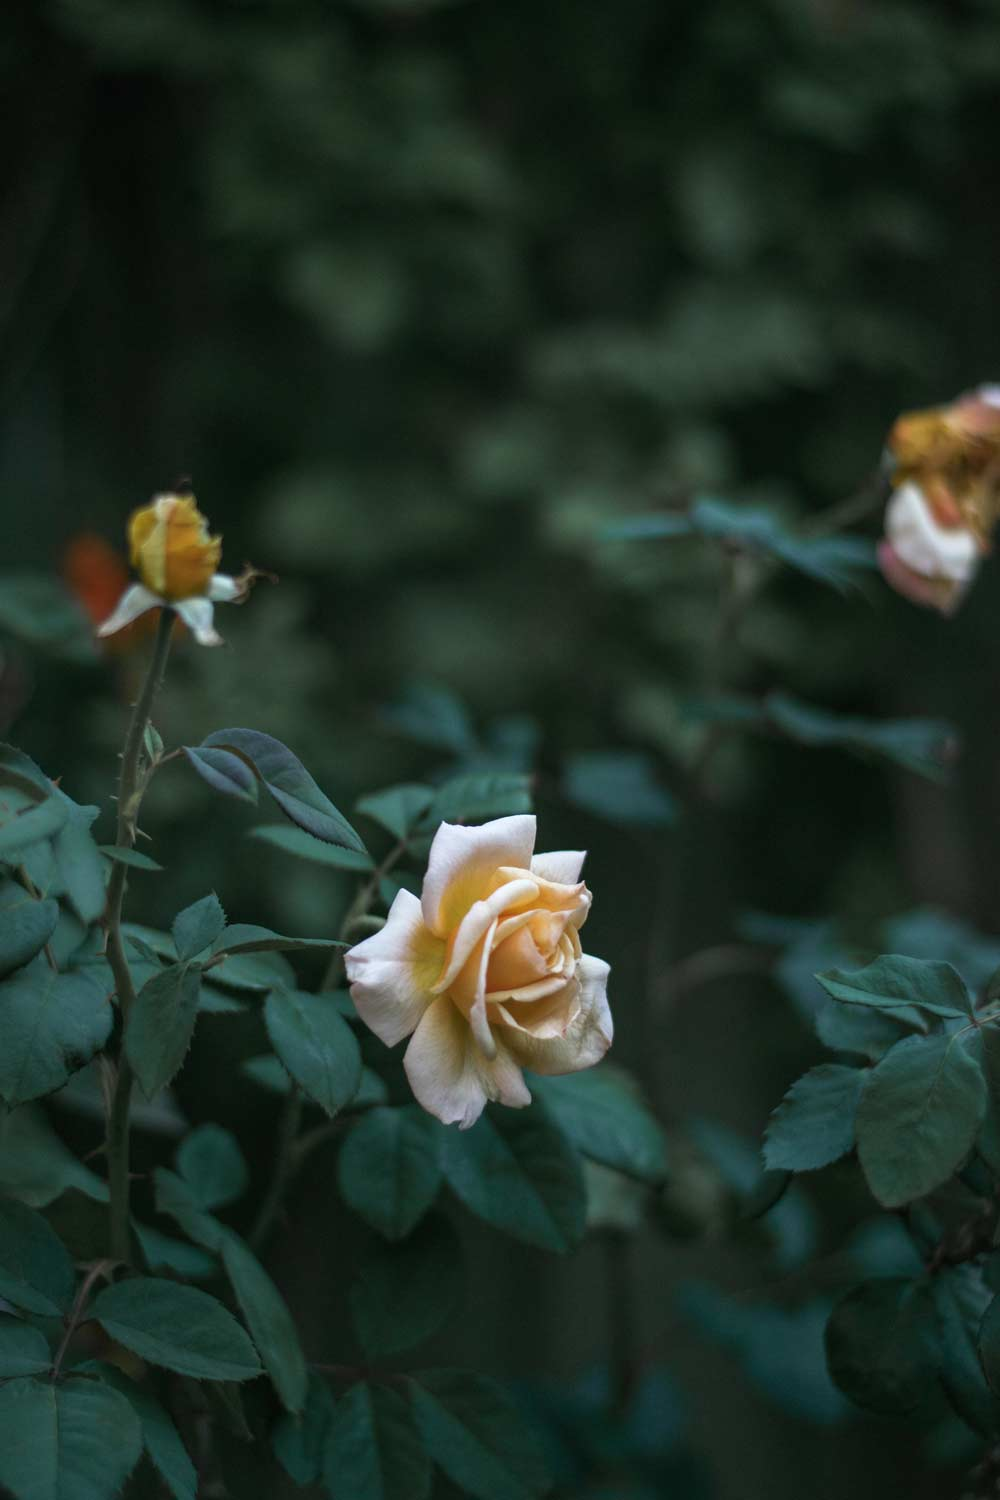 Yellow roses on rose bush